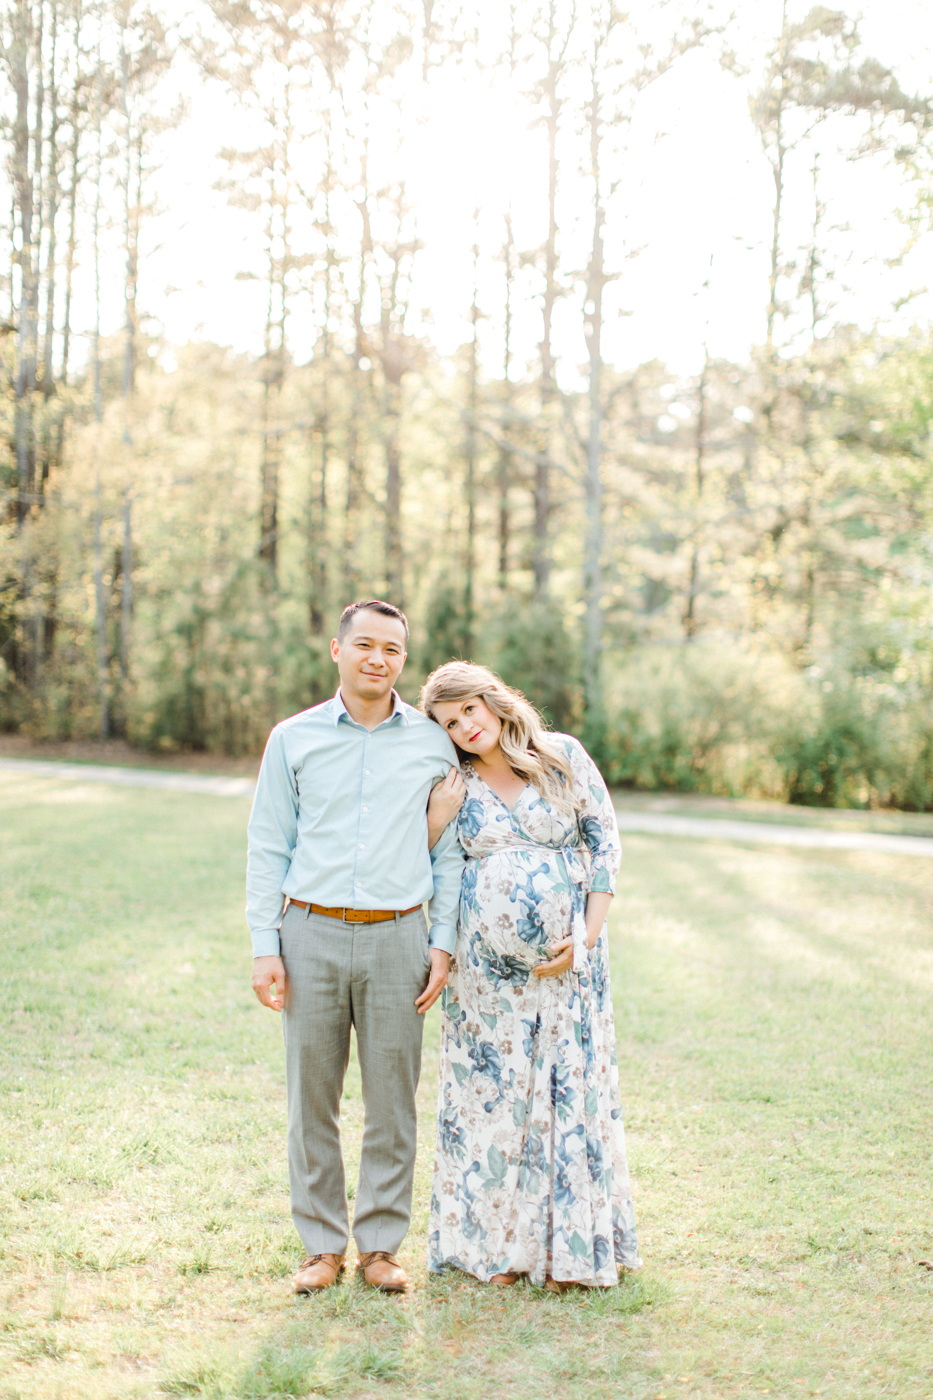 four corners photography atlanta engagement photographer georgia photographer fine art film photographer atlanta natural light photographer newborn photographer family photographer fine art maternity photographer-21.jpg